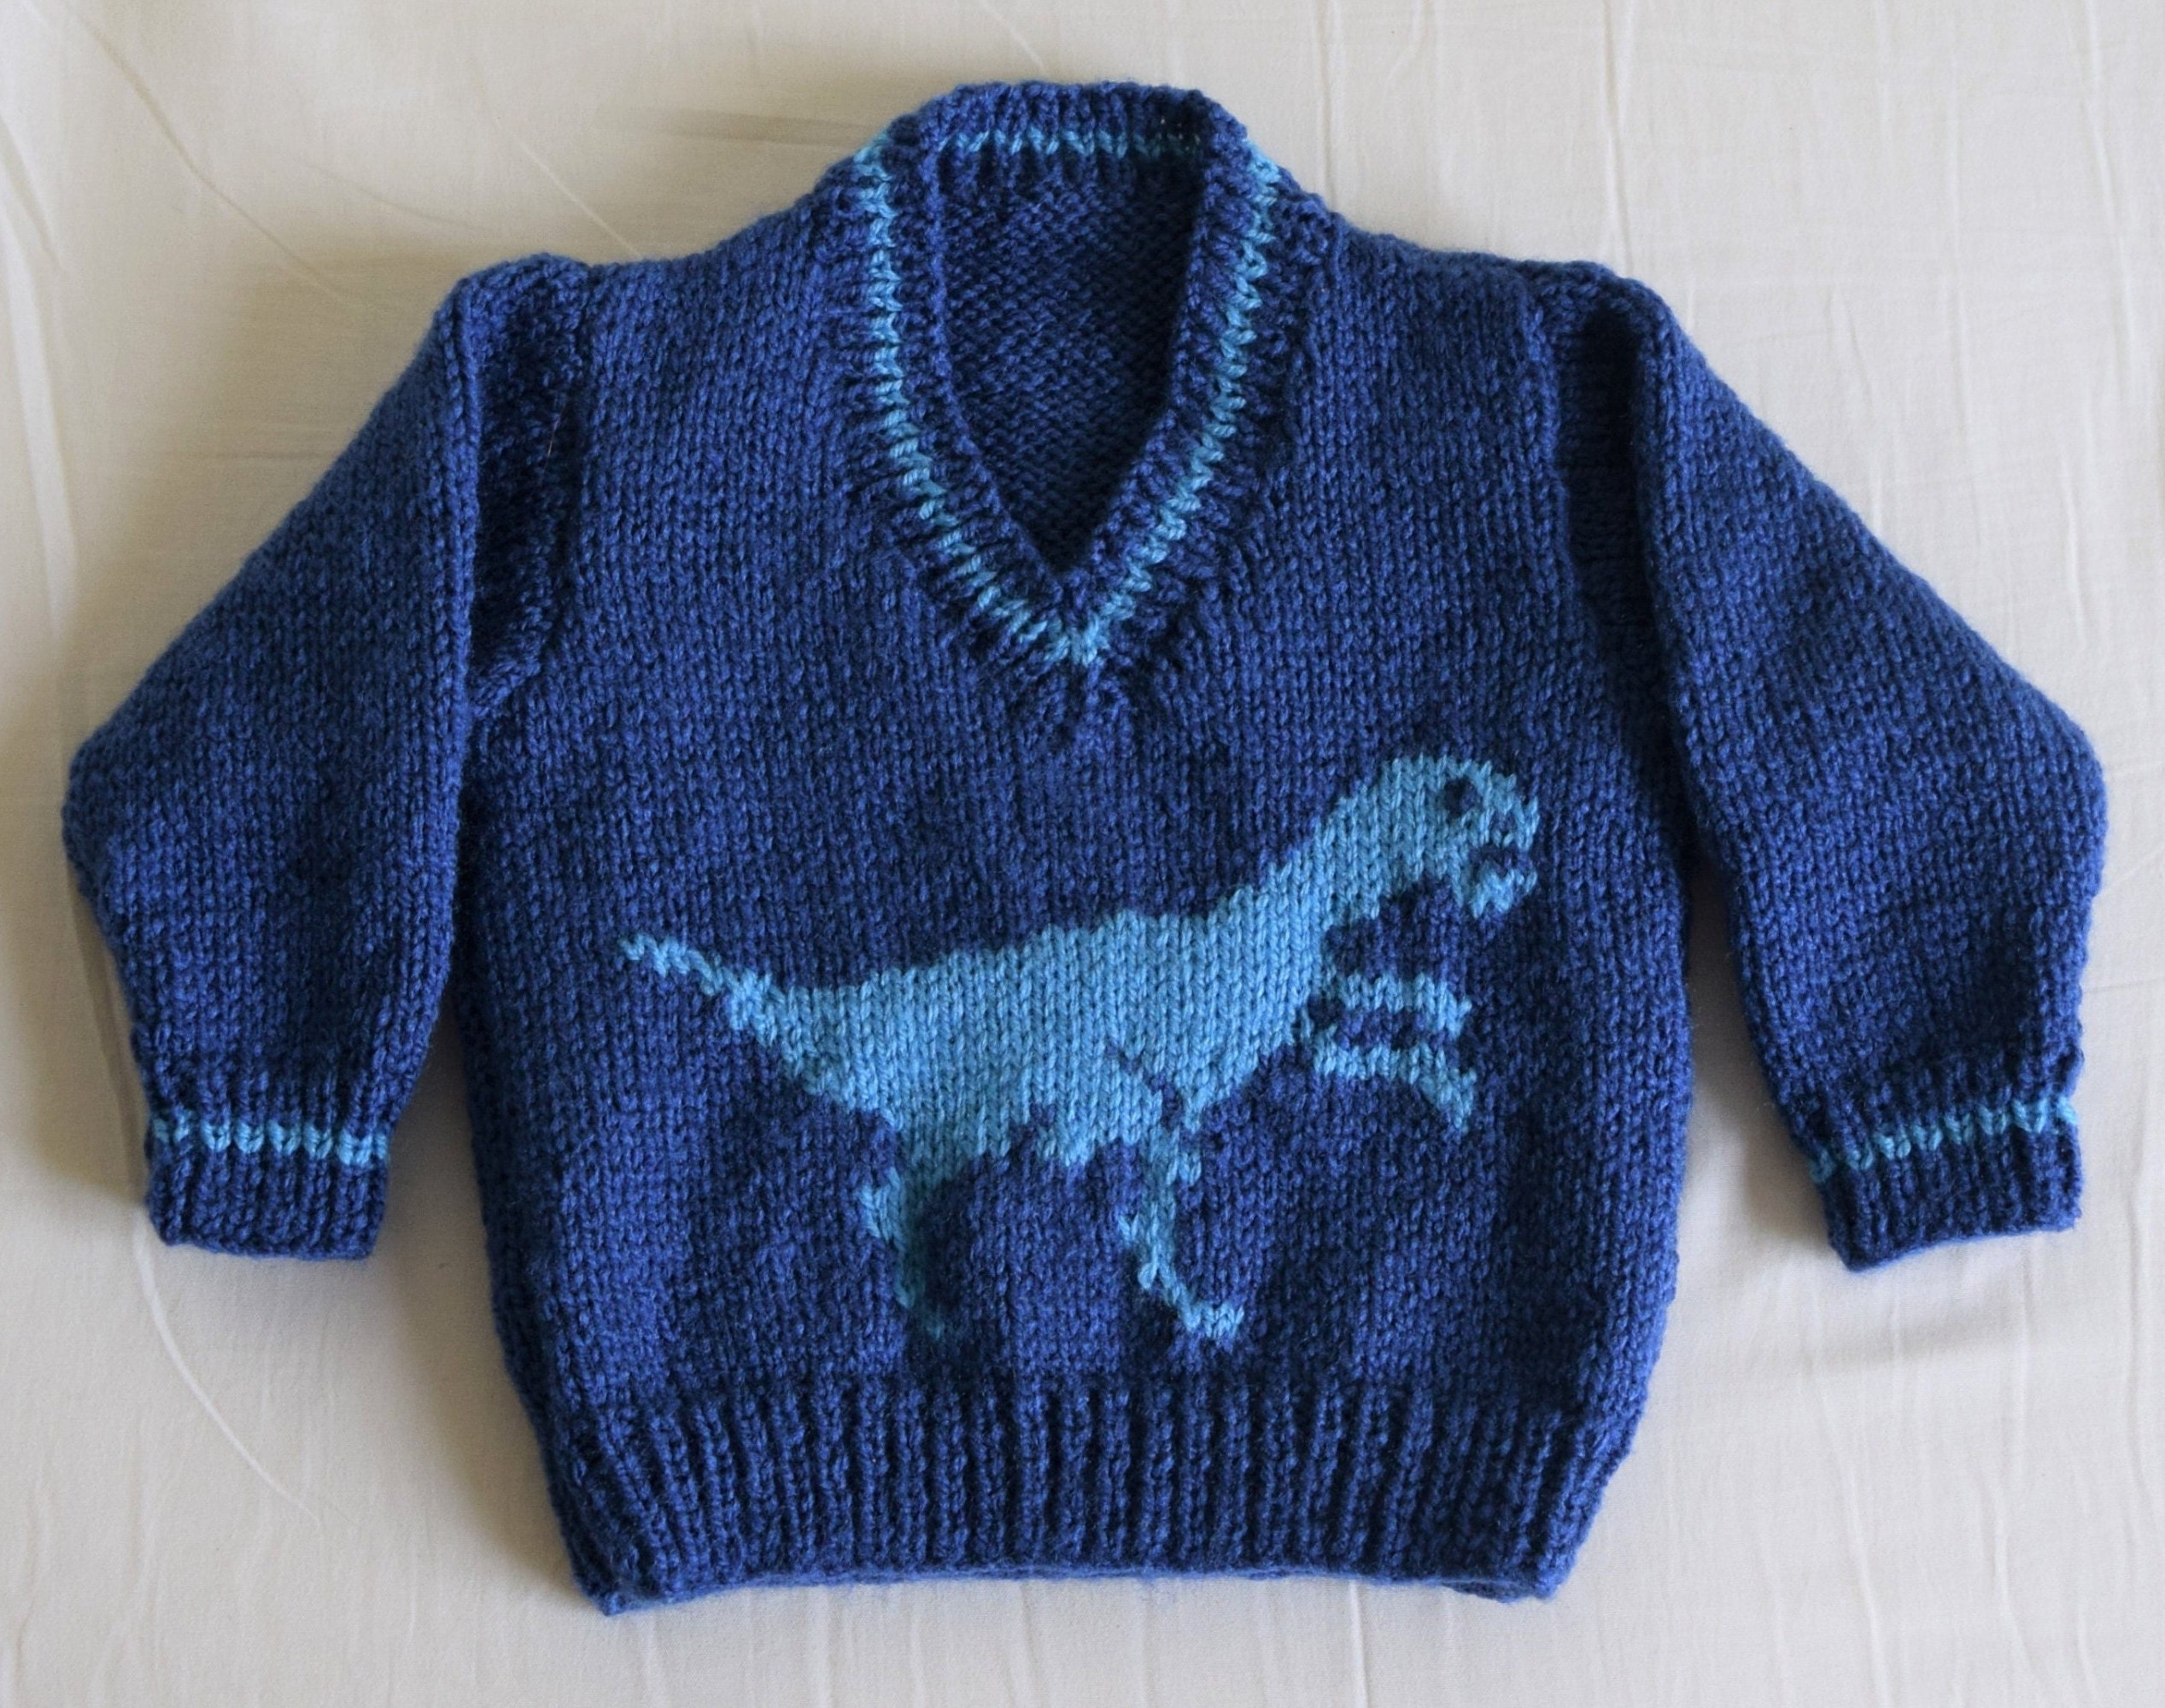 17acbe5a48a6a Knitting pattern for boys and girls dinosaur V-neck tops